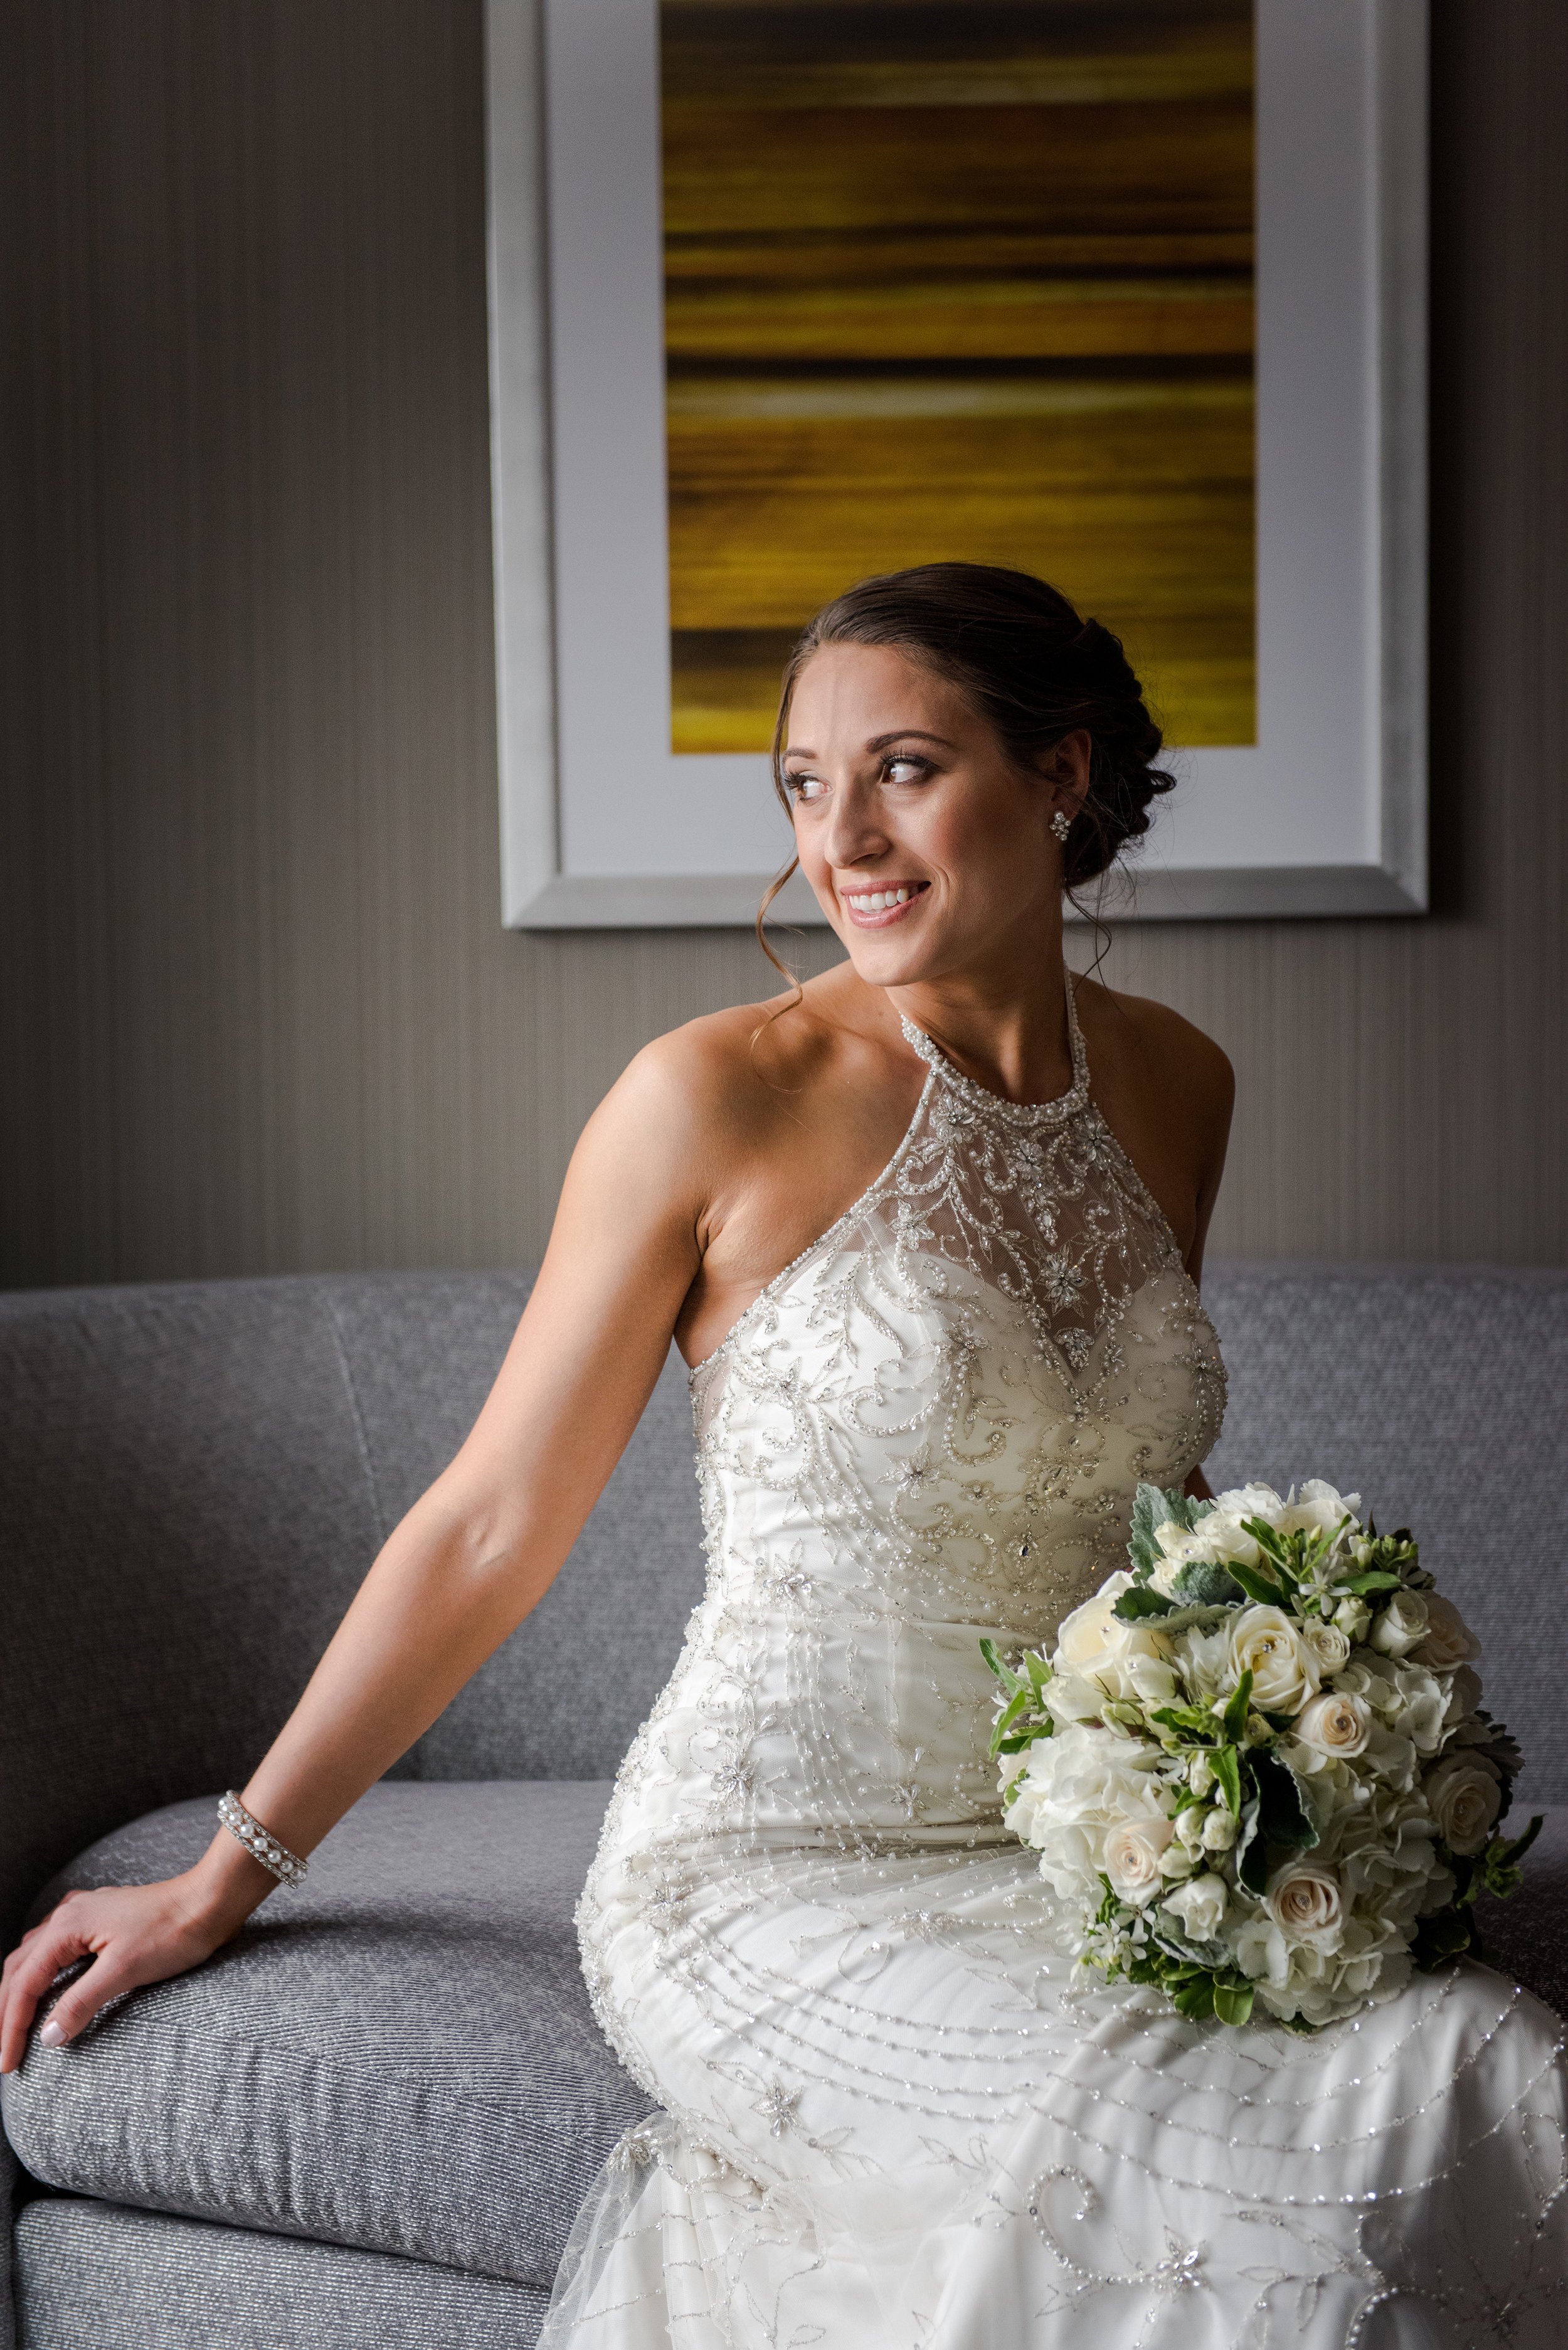 Bridal gallery - View Gallery Here